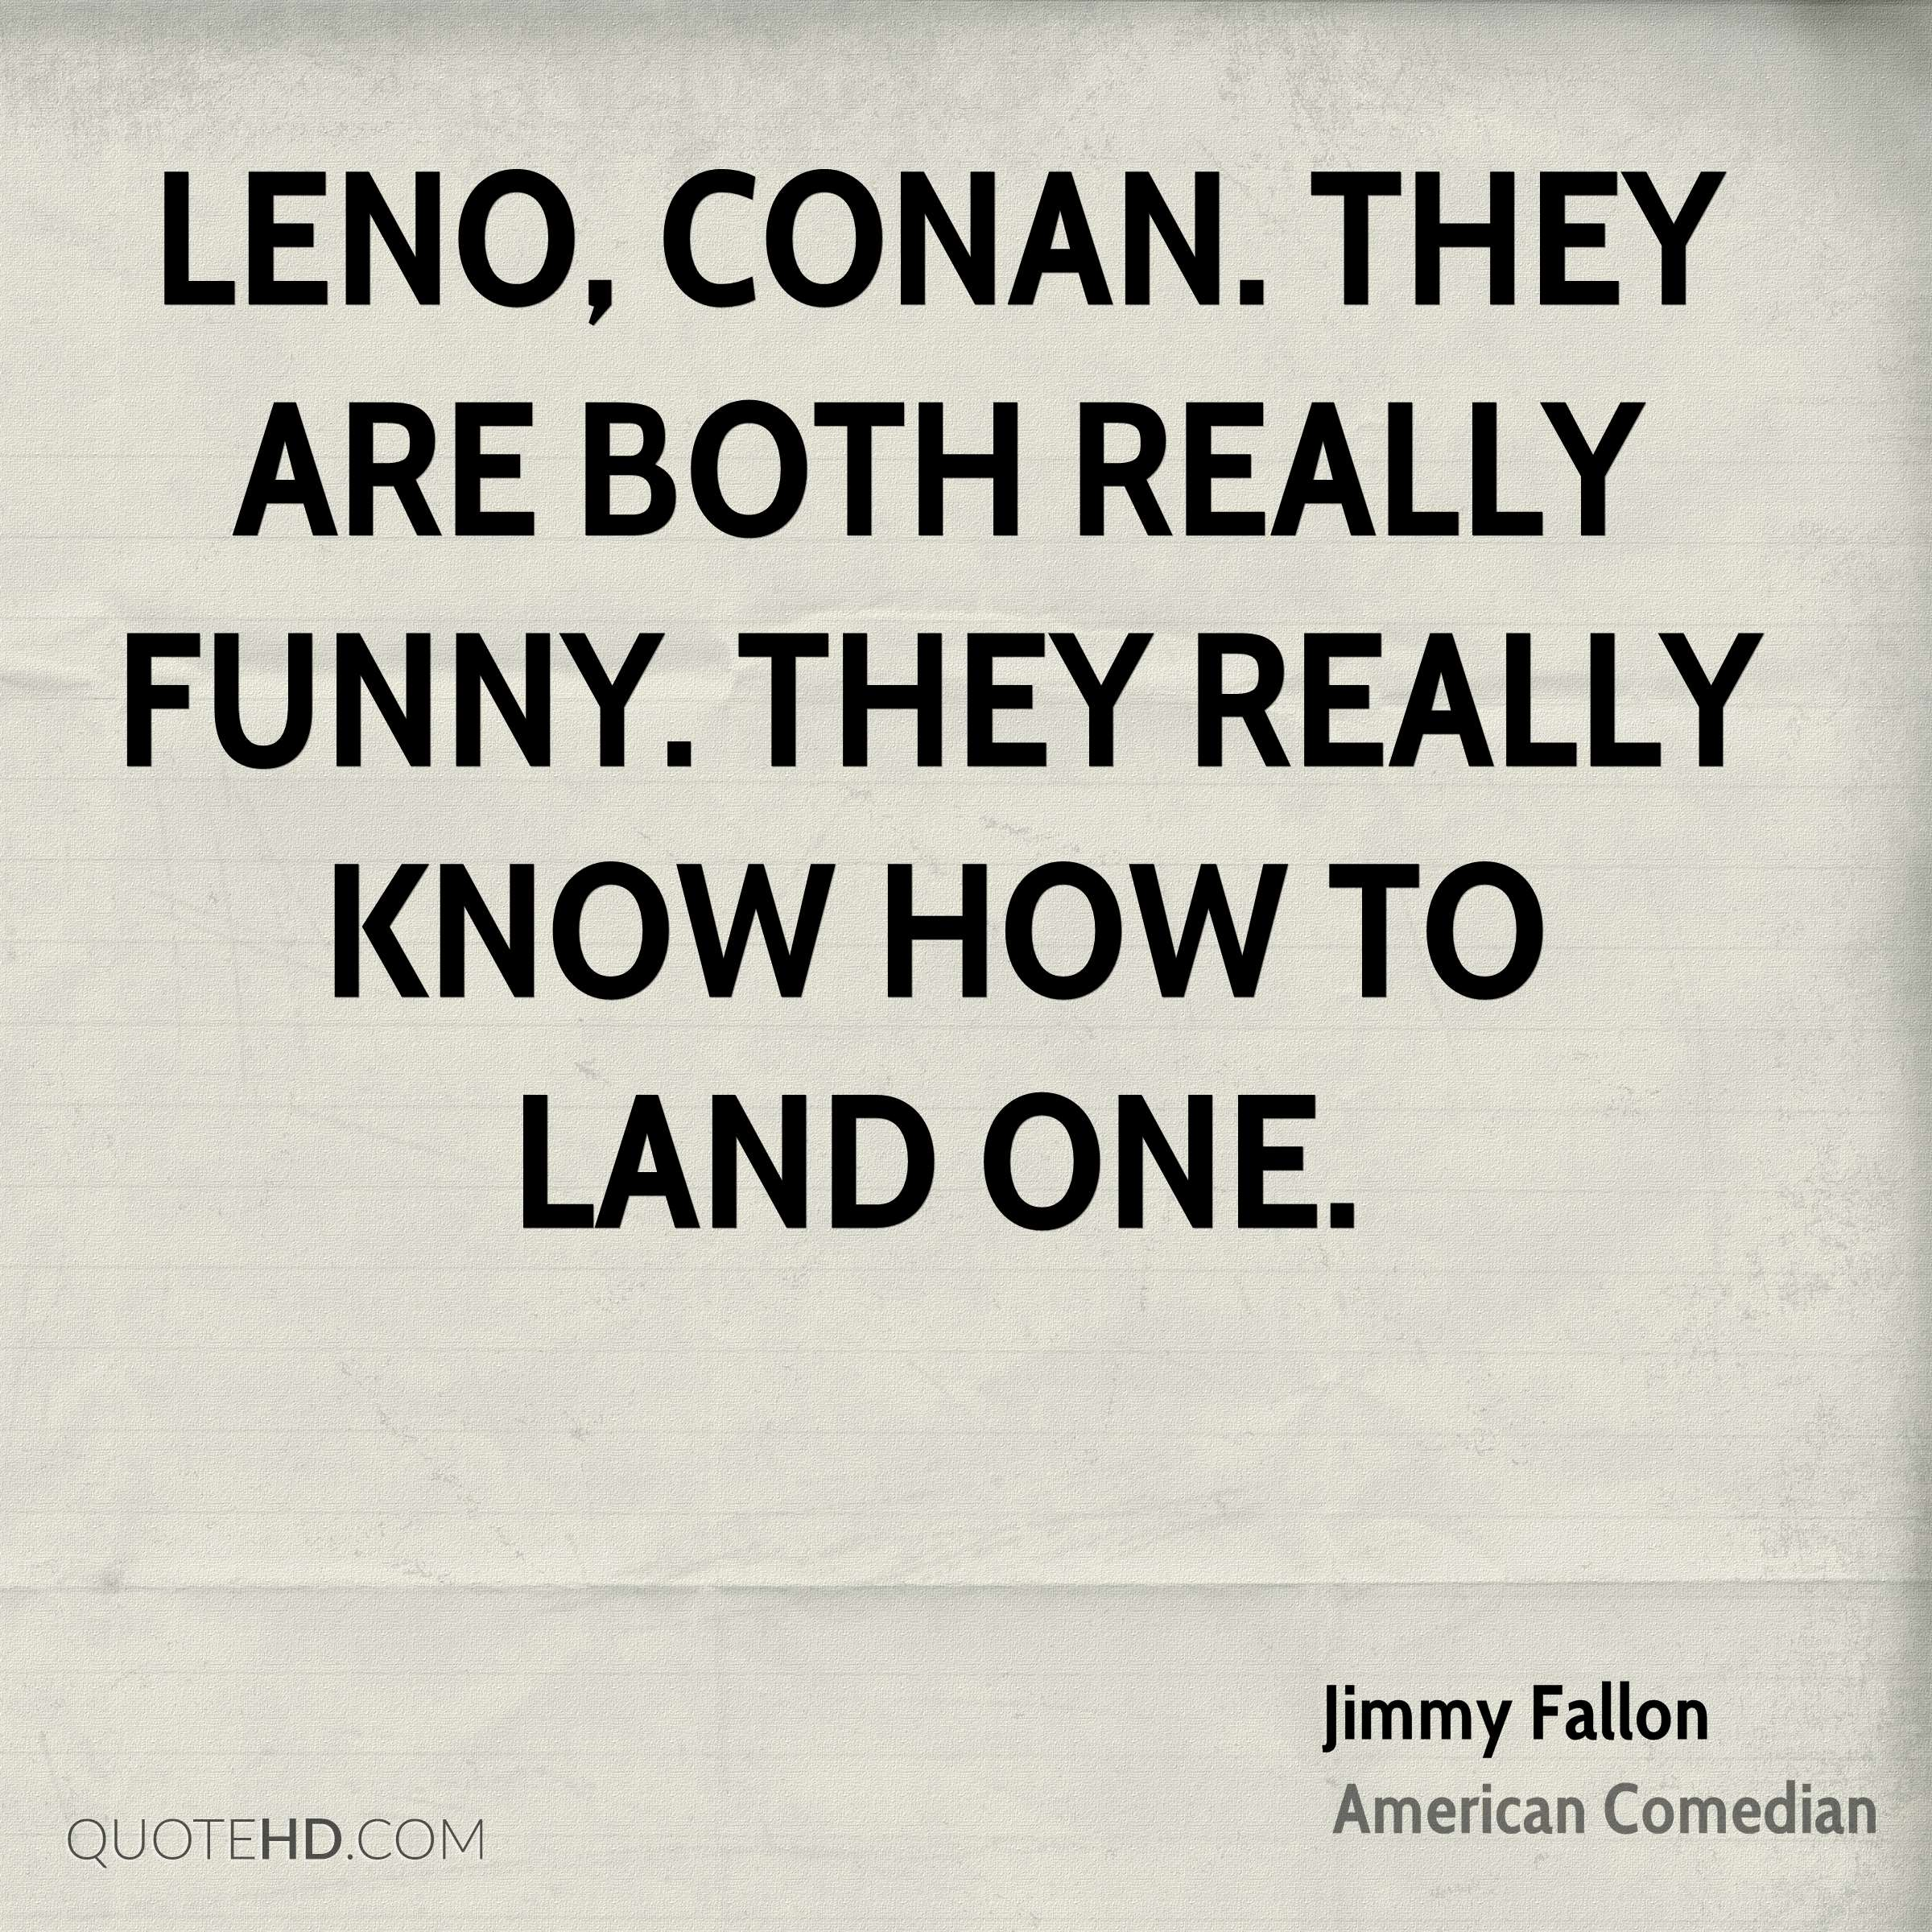 Leno, Conan. They are both really funny. They really know how to land one.